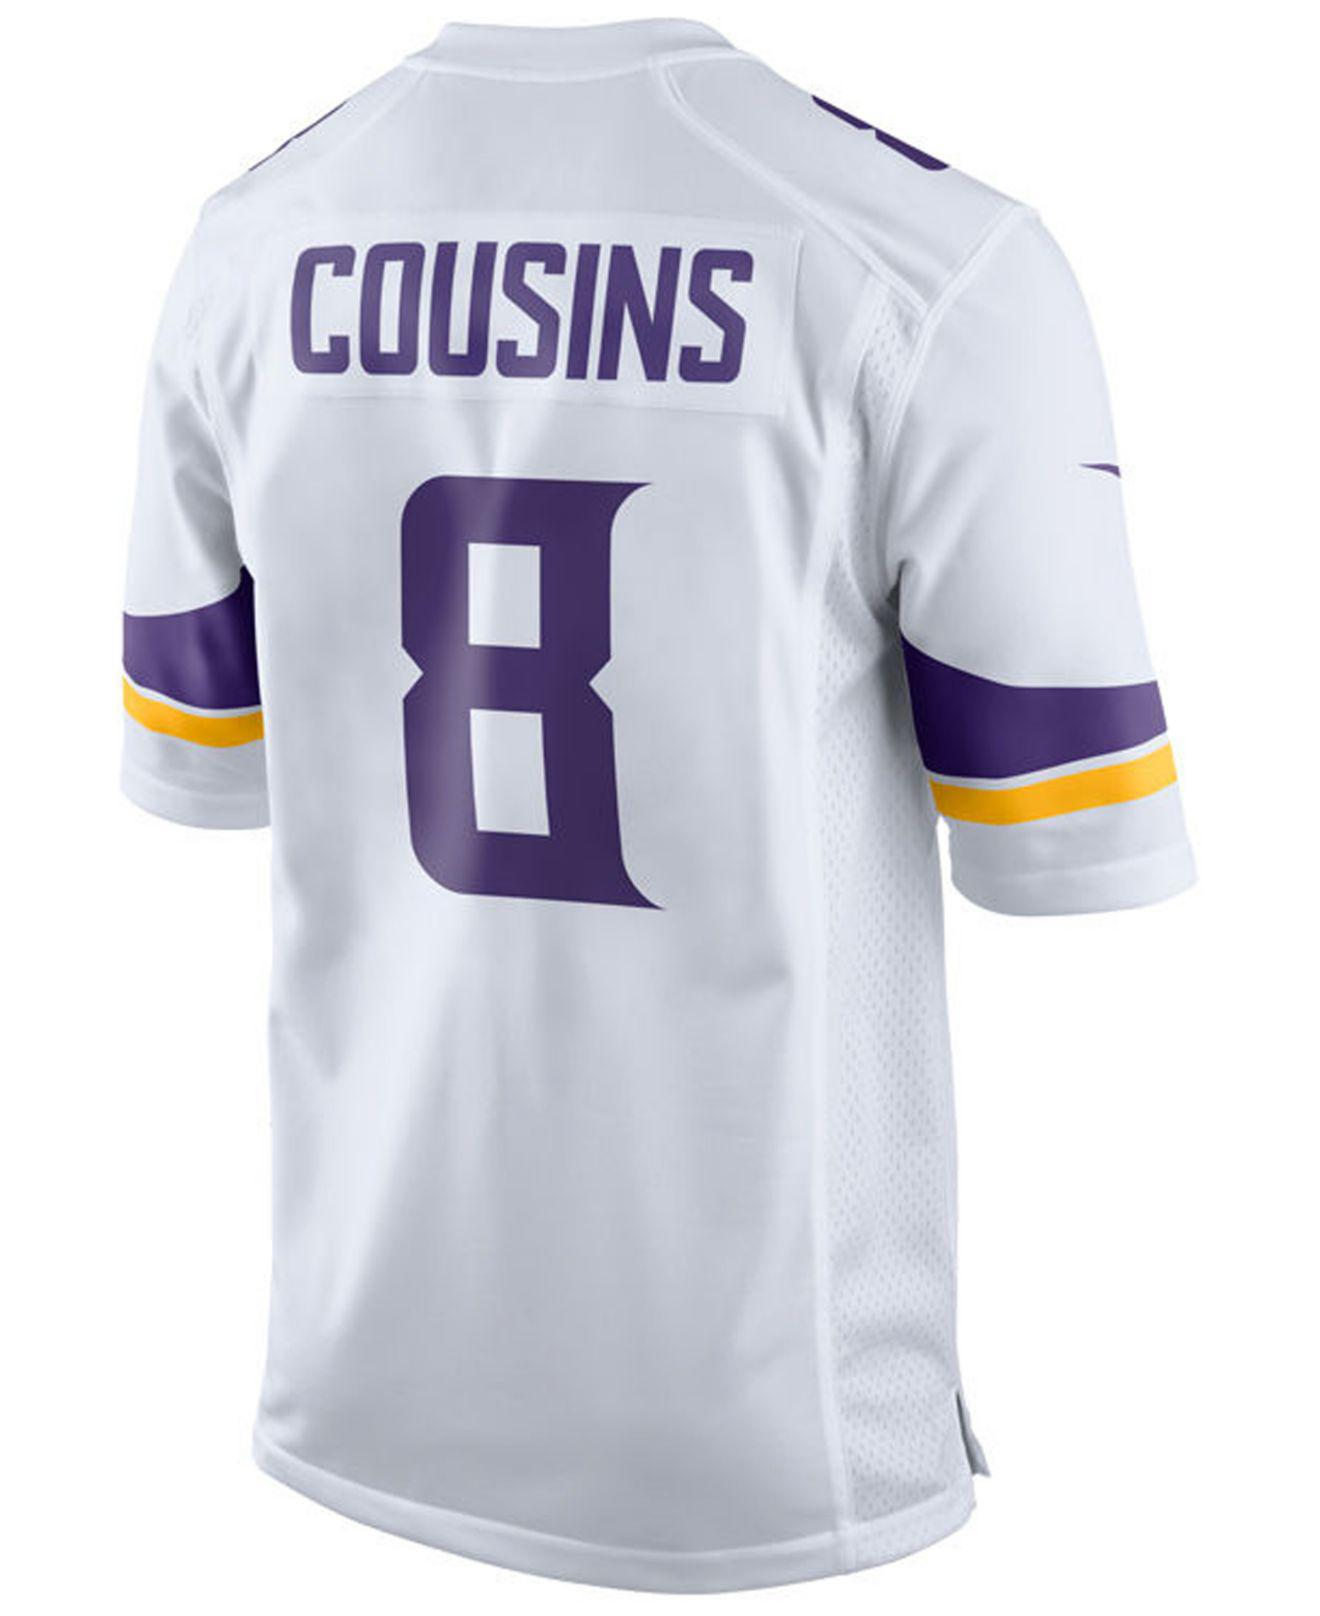 Lyst - Nike Kirk Cousins Minnesota Vikings Game Jersey in White for Men 119a8d889